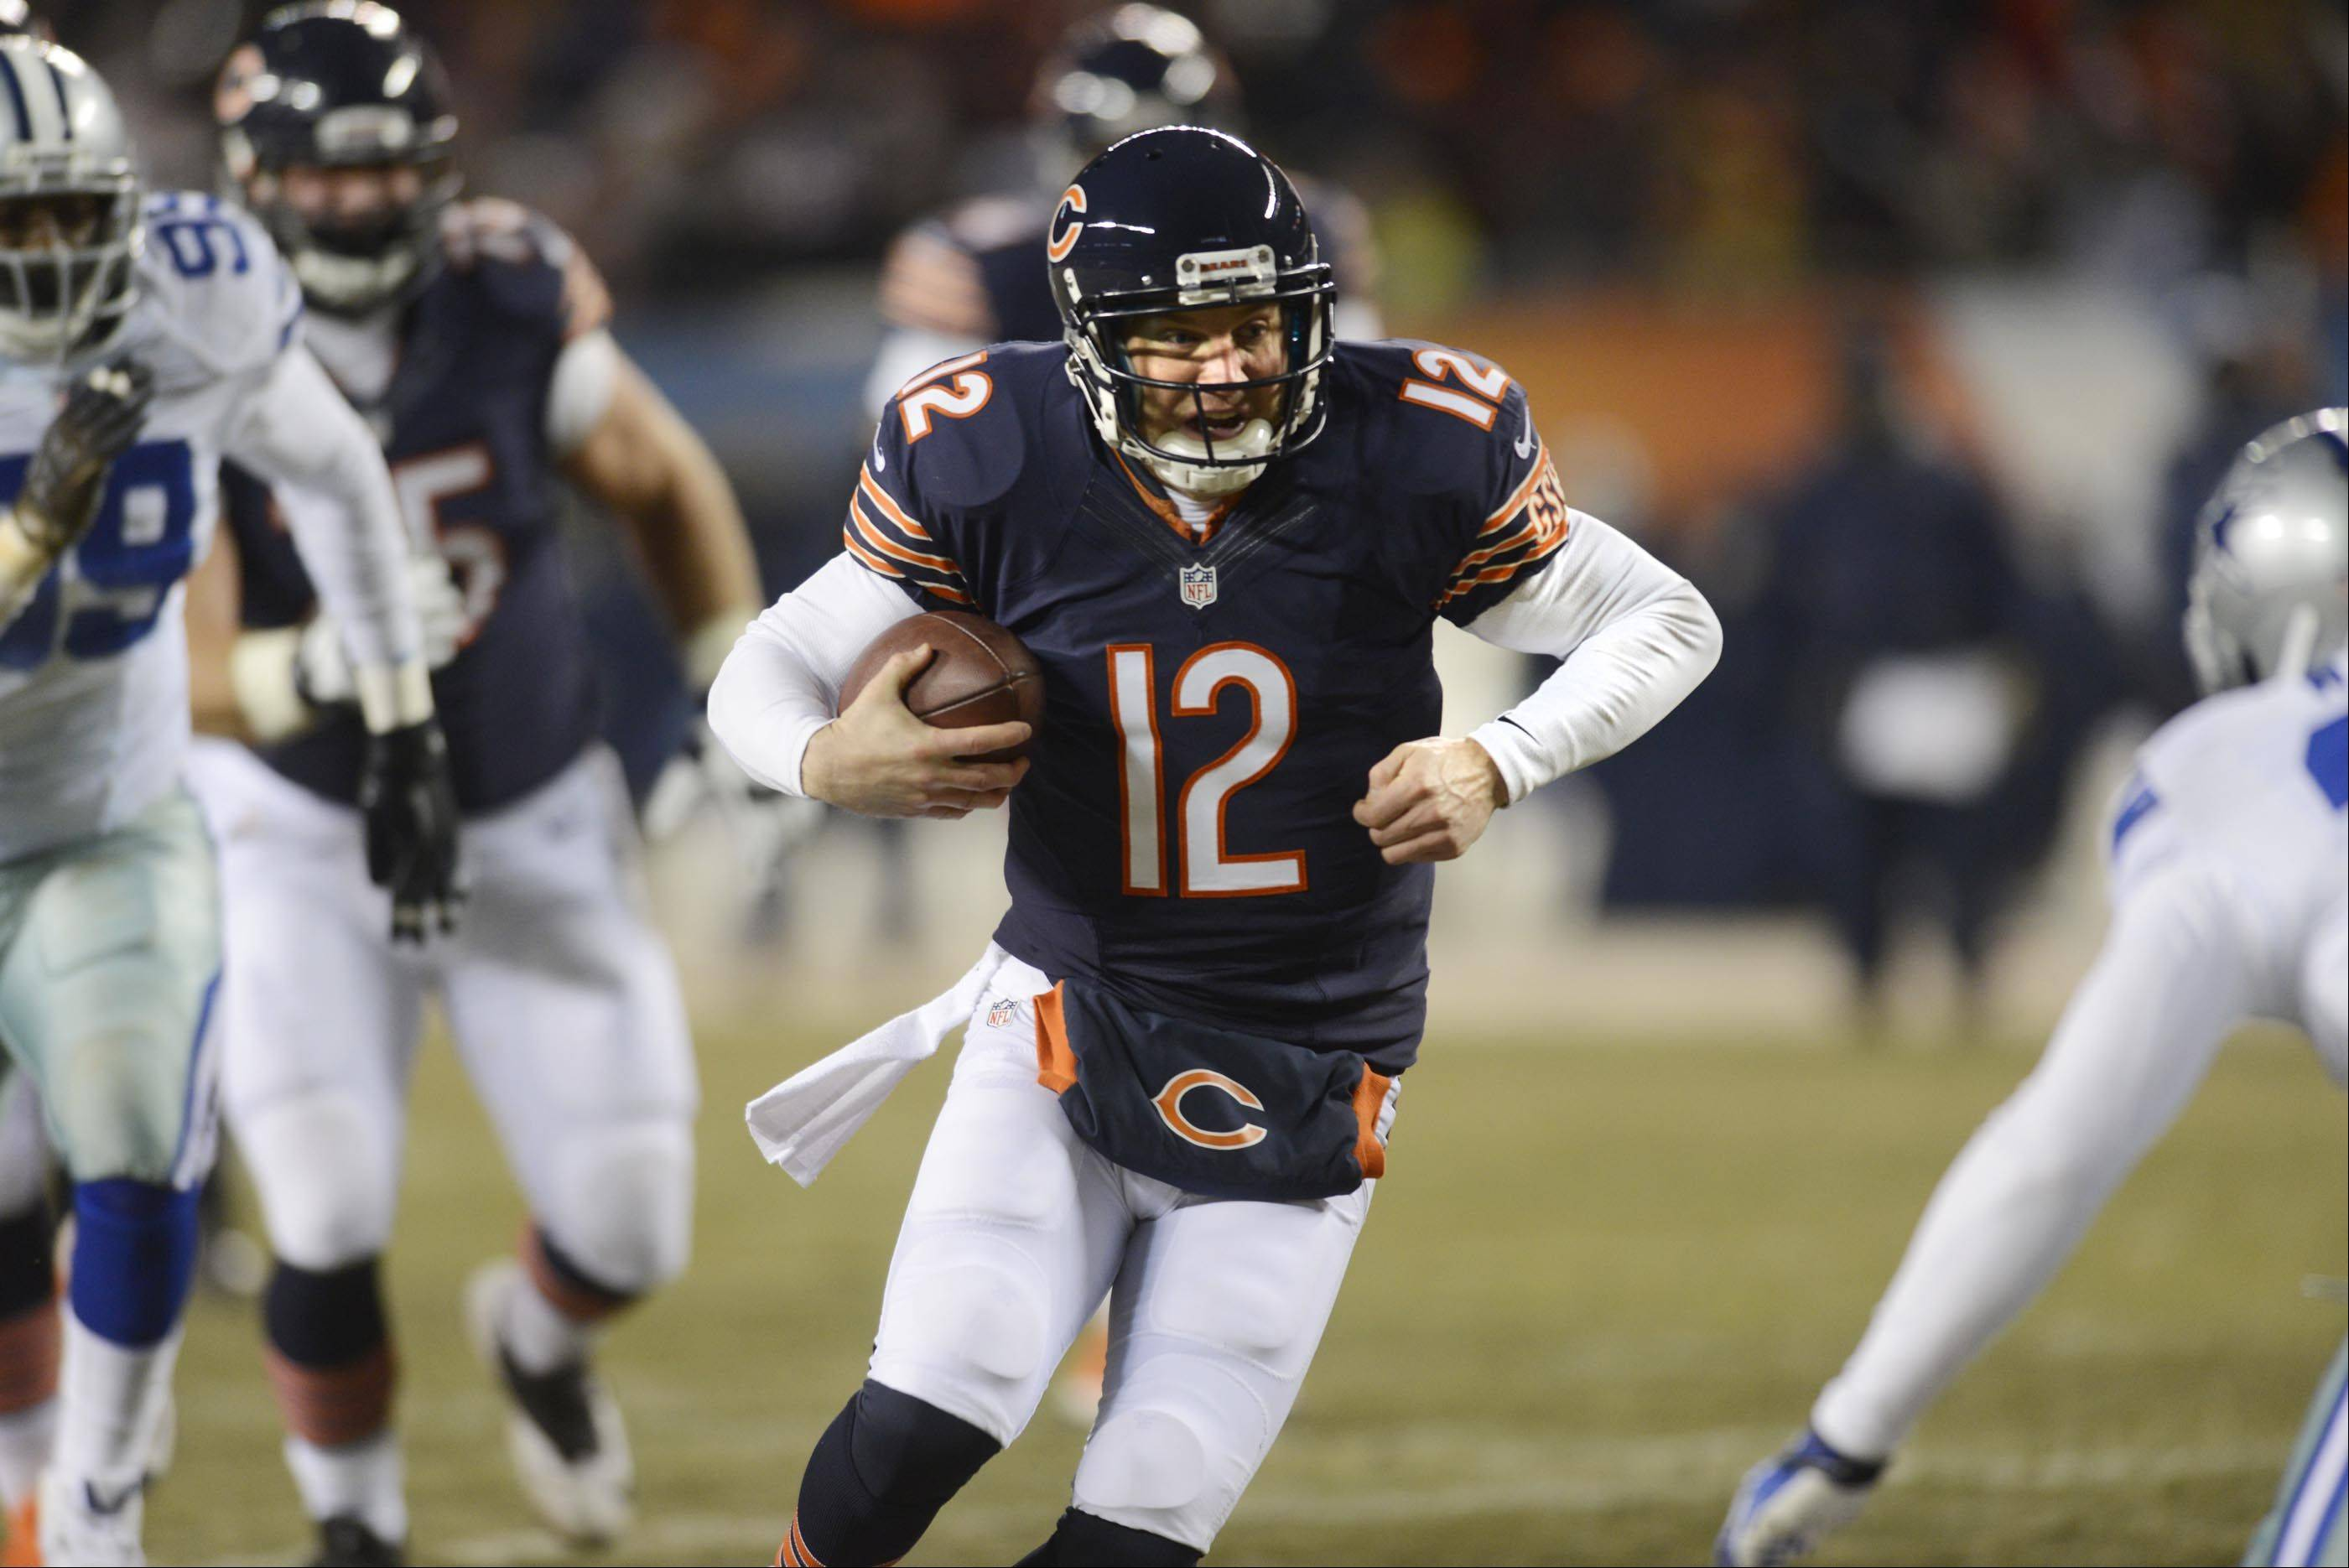 Bears quarterback Josh McCown runs for a touchdown in the second quarter against the Dallas Cowboys on Monday at Soldier Field.